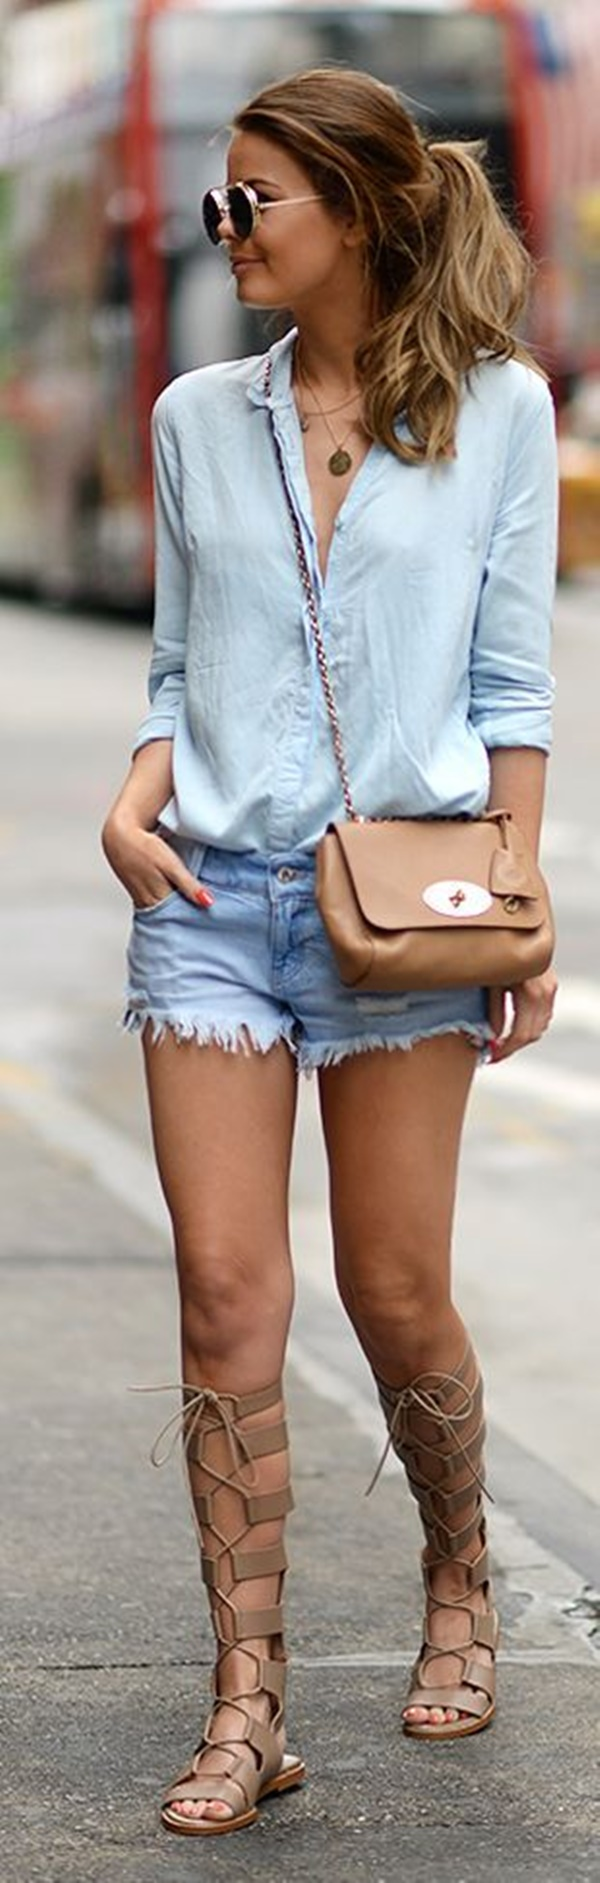 denim shorts outfits (7)